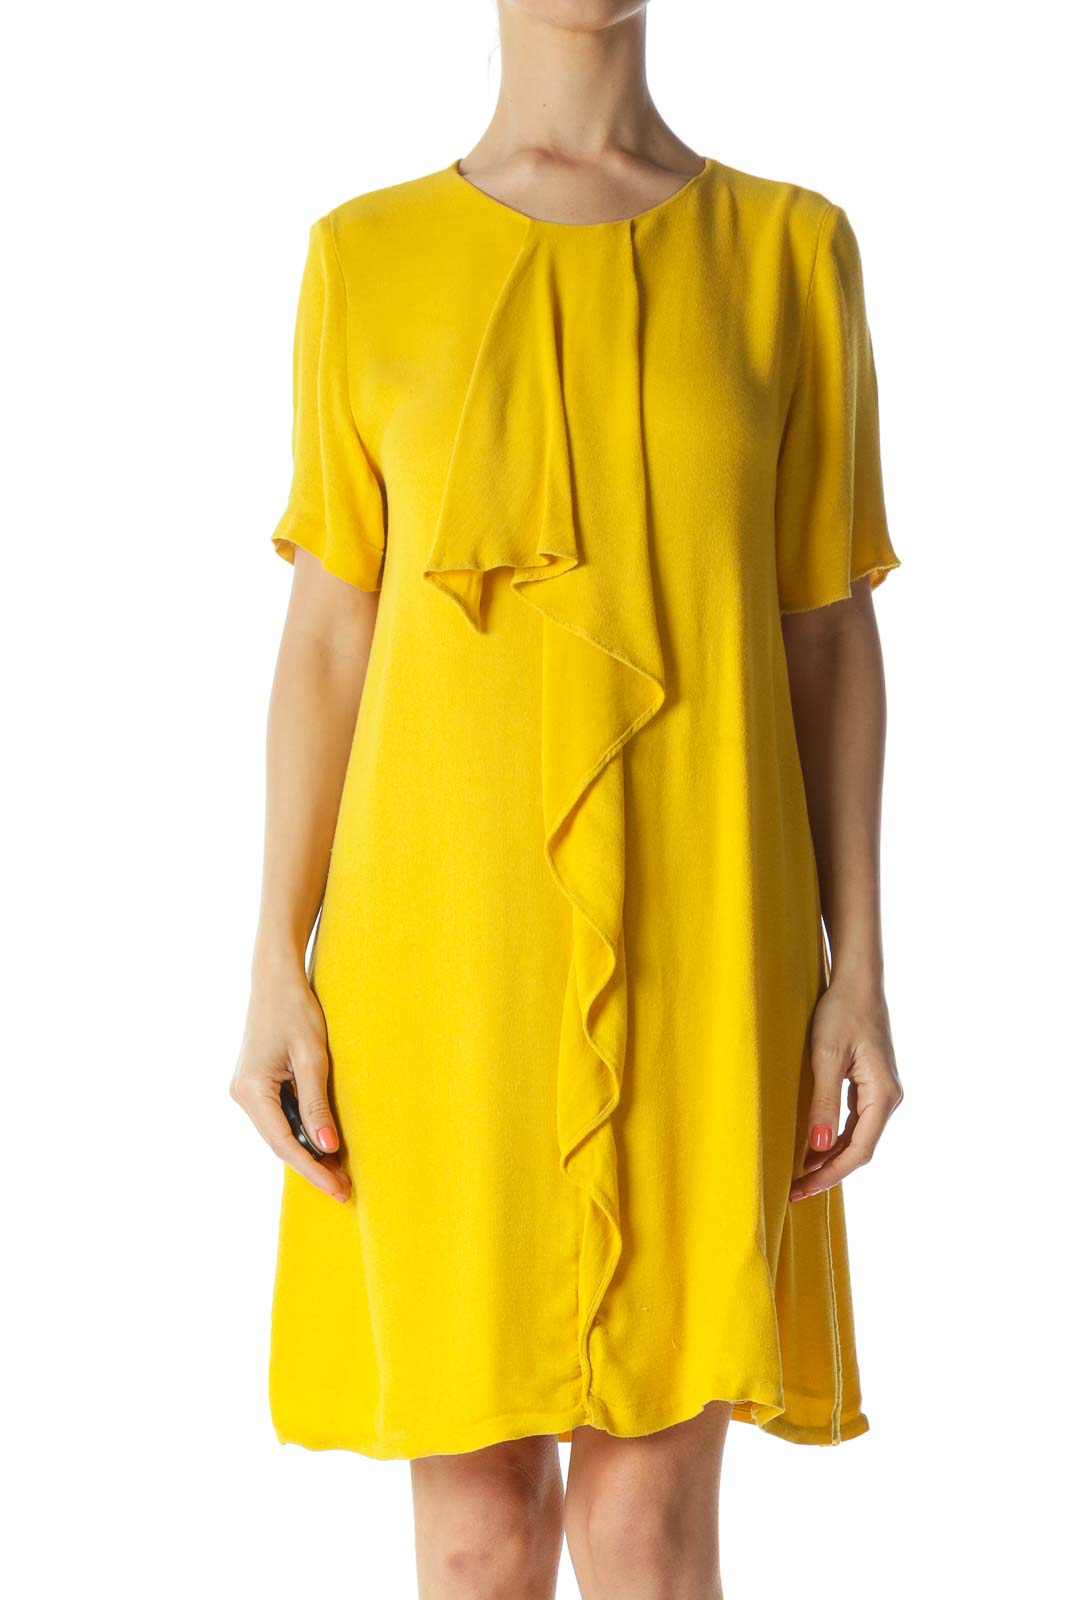 Mustard-Yellow Ruffled-Detail Short-Sleeve Day Dress Front